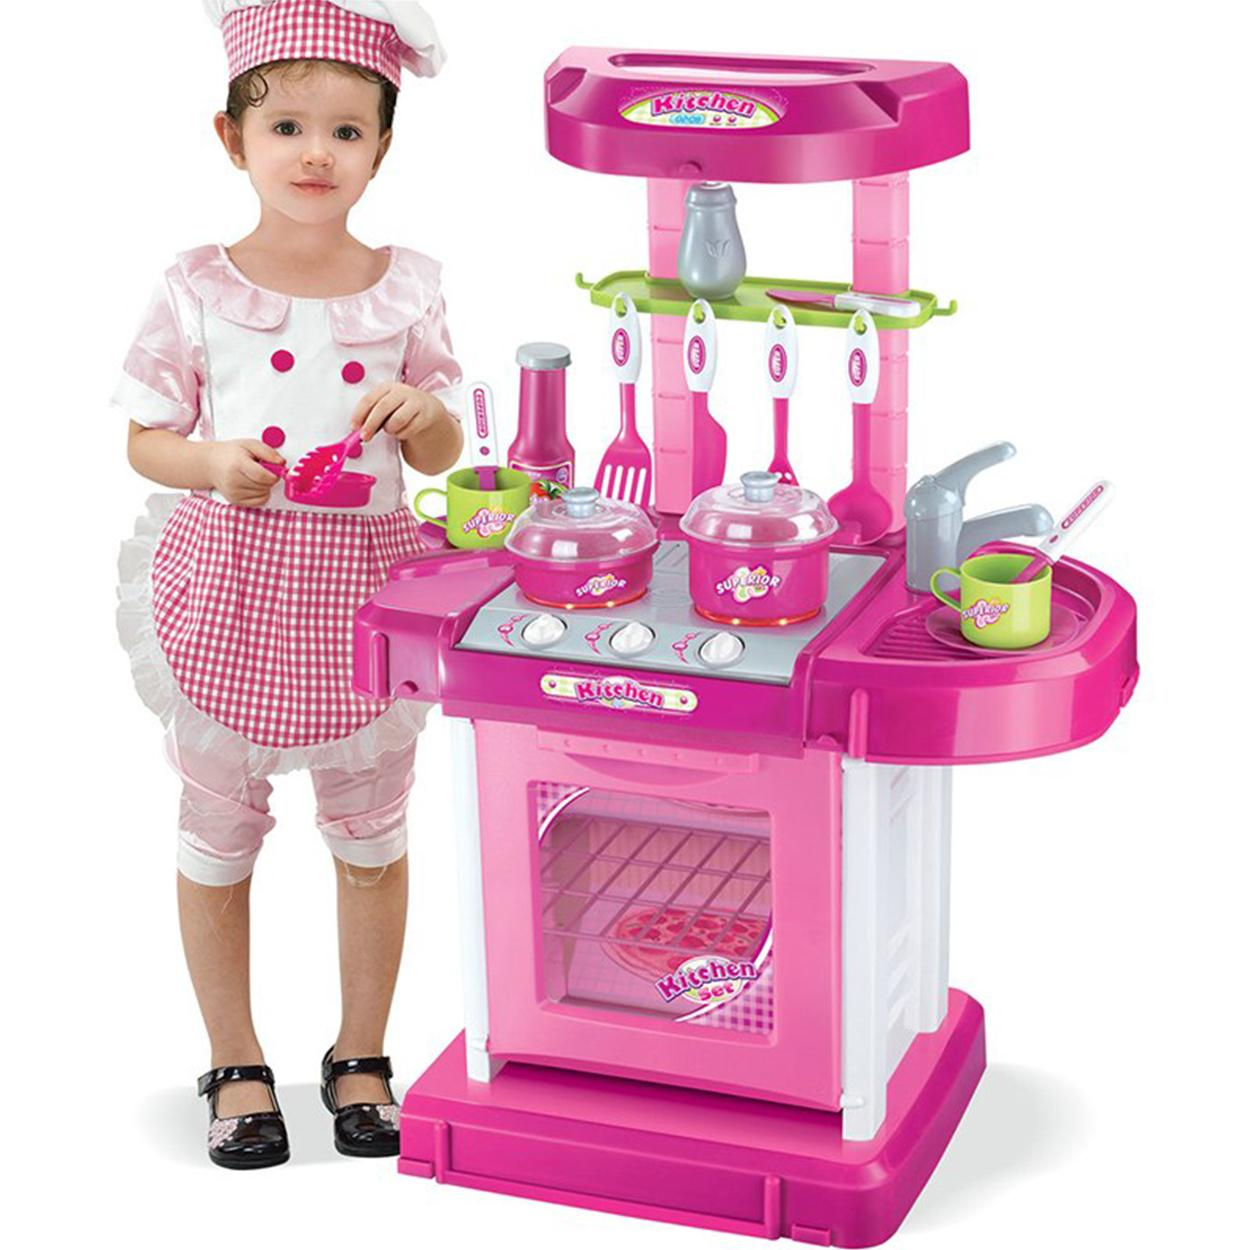 Play House Girl Pretend Play Tableware Sets Toys Kitchen Cooking Doll Toys Children Gifts For All Occasion By Elena Accessories.